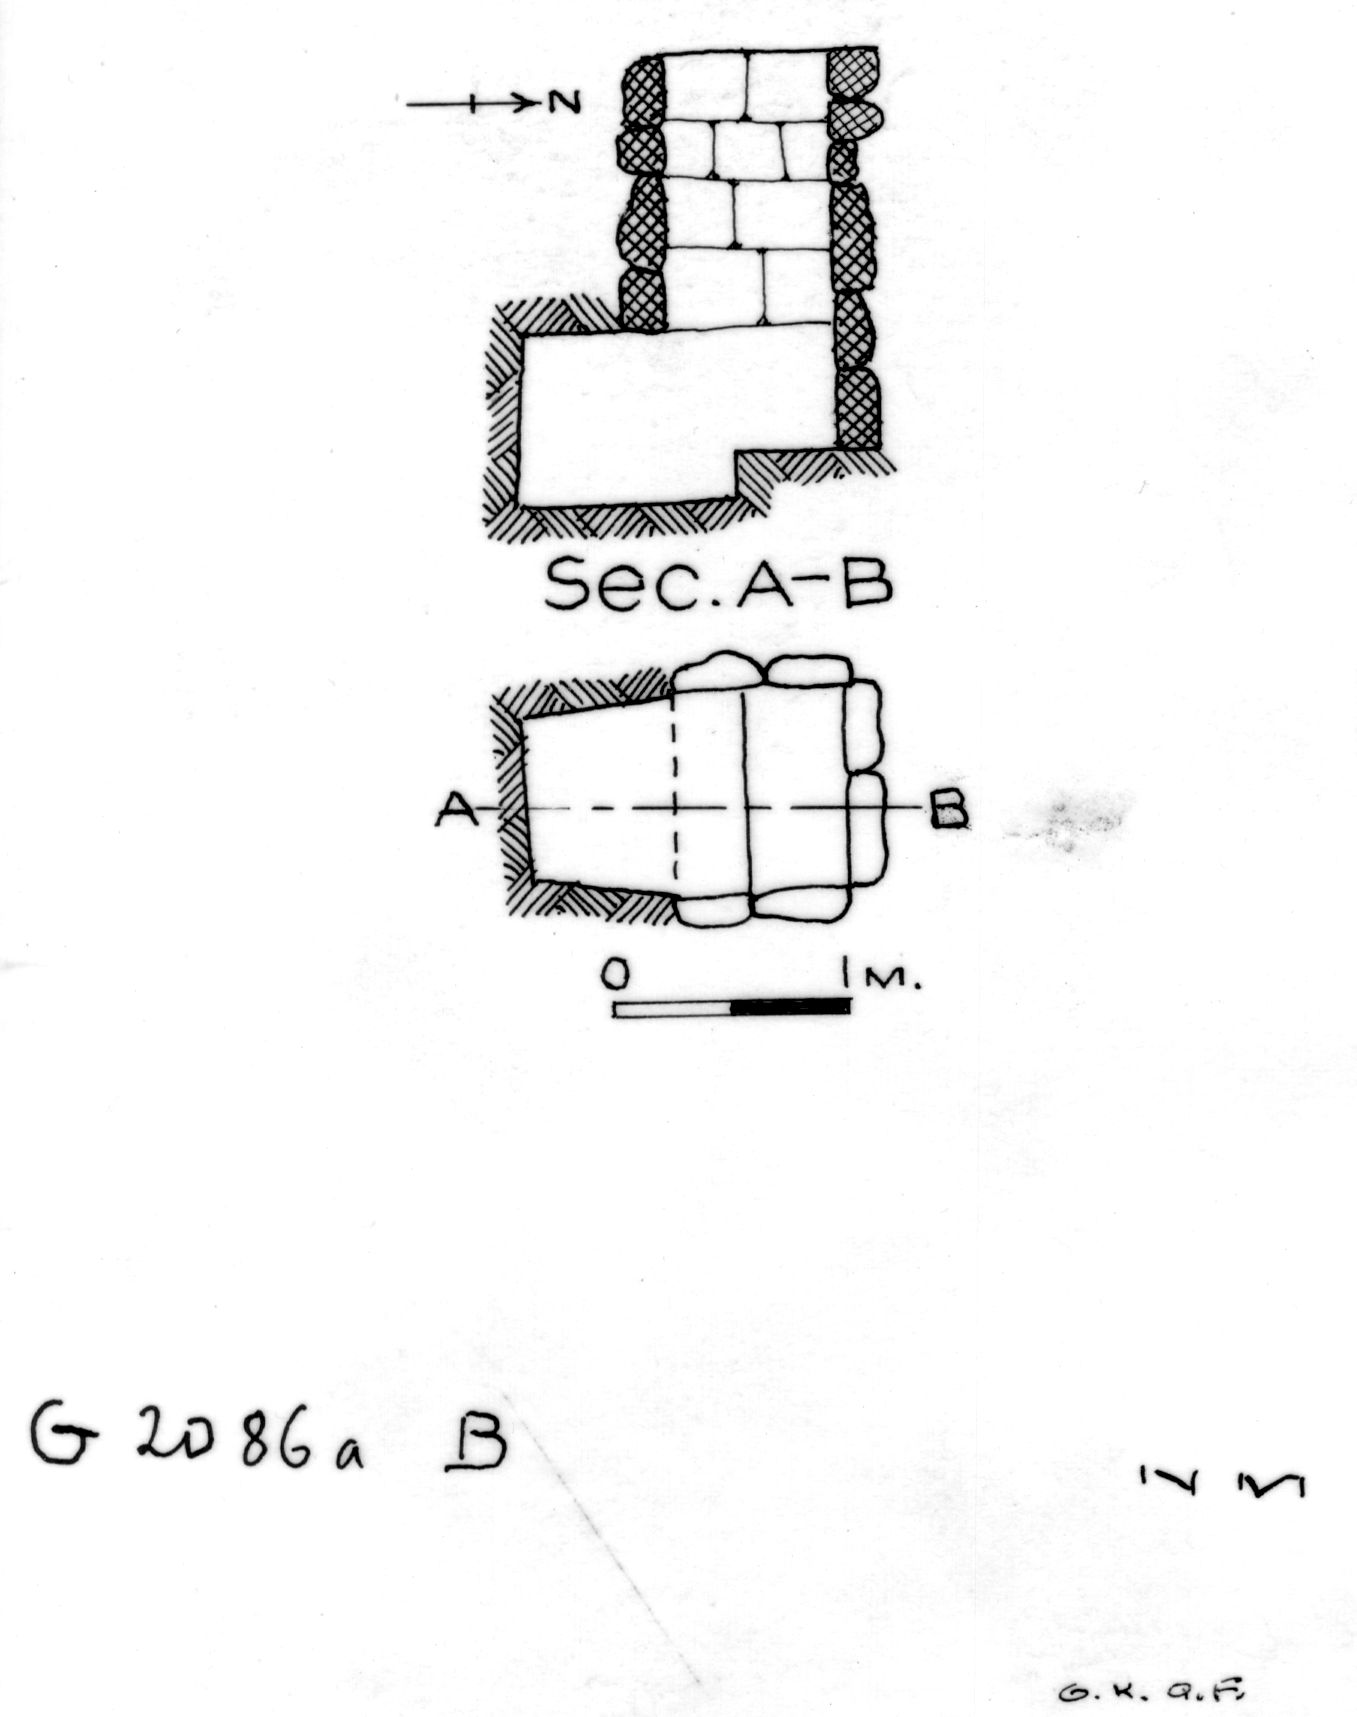 Maps and plans: G 2086a, Shaft B